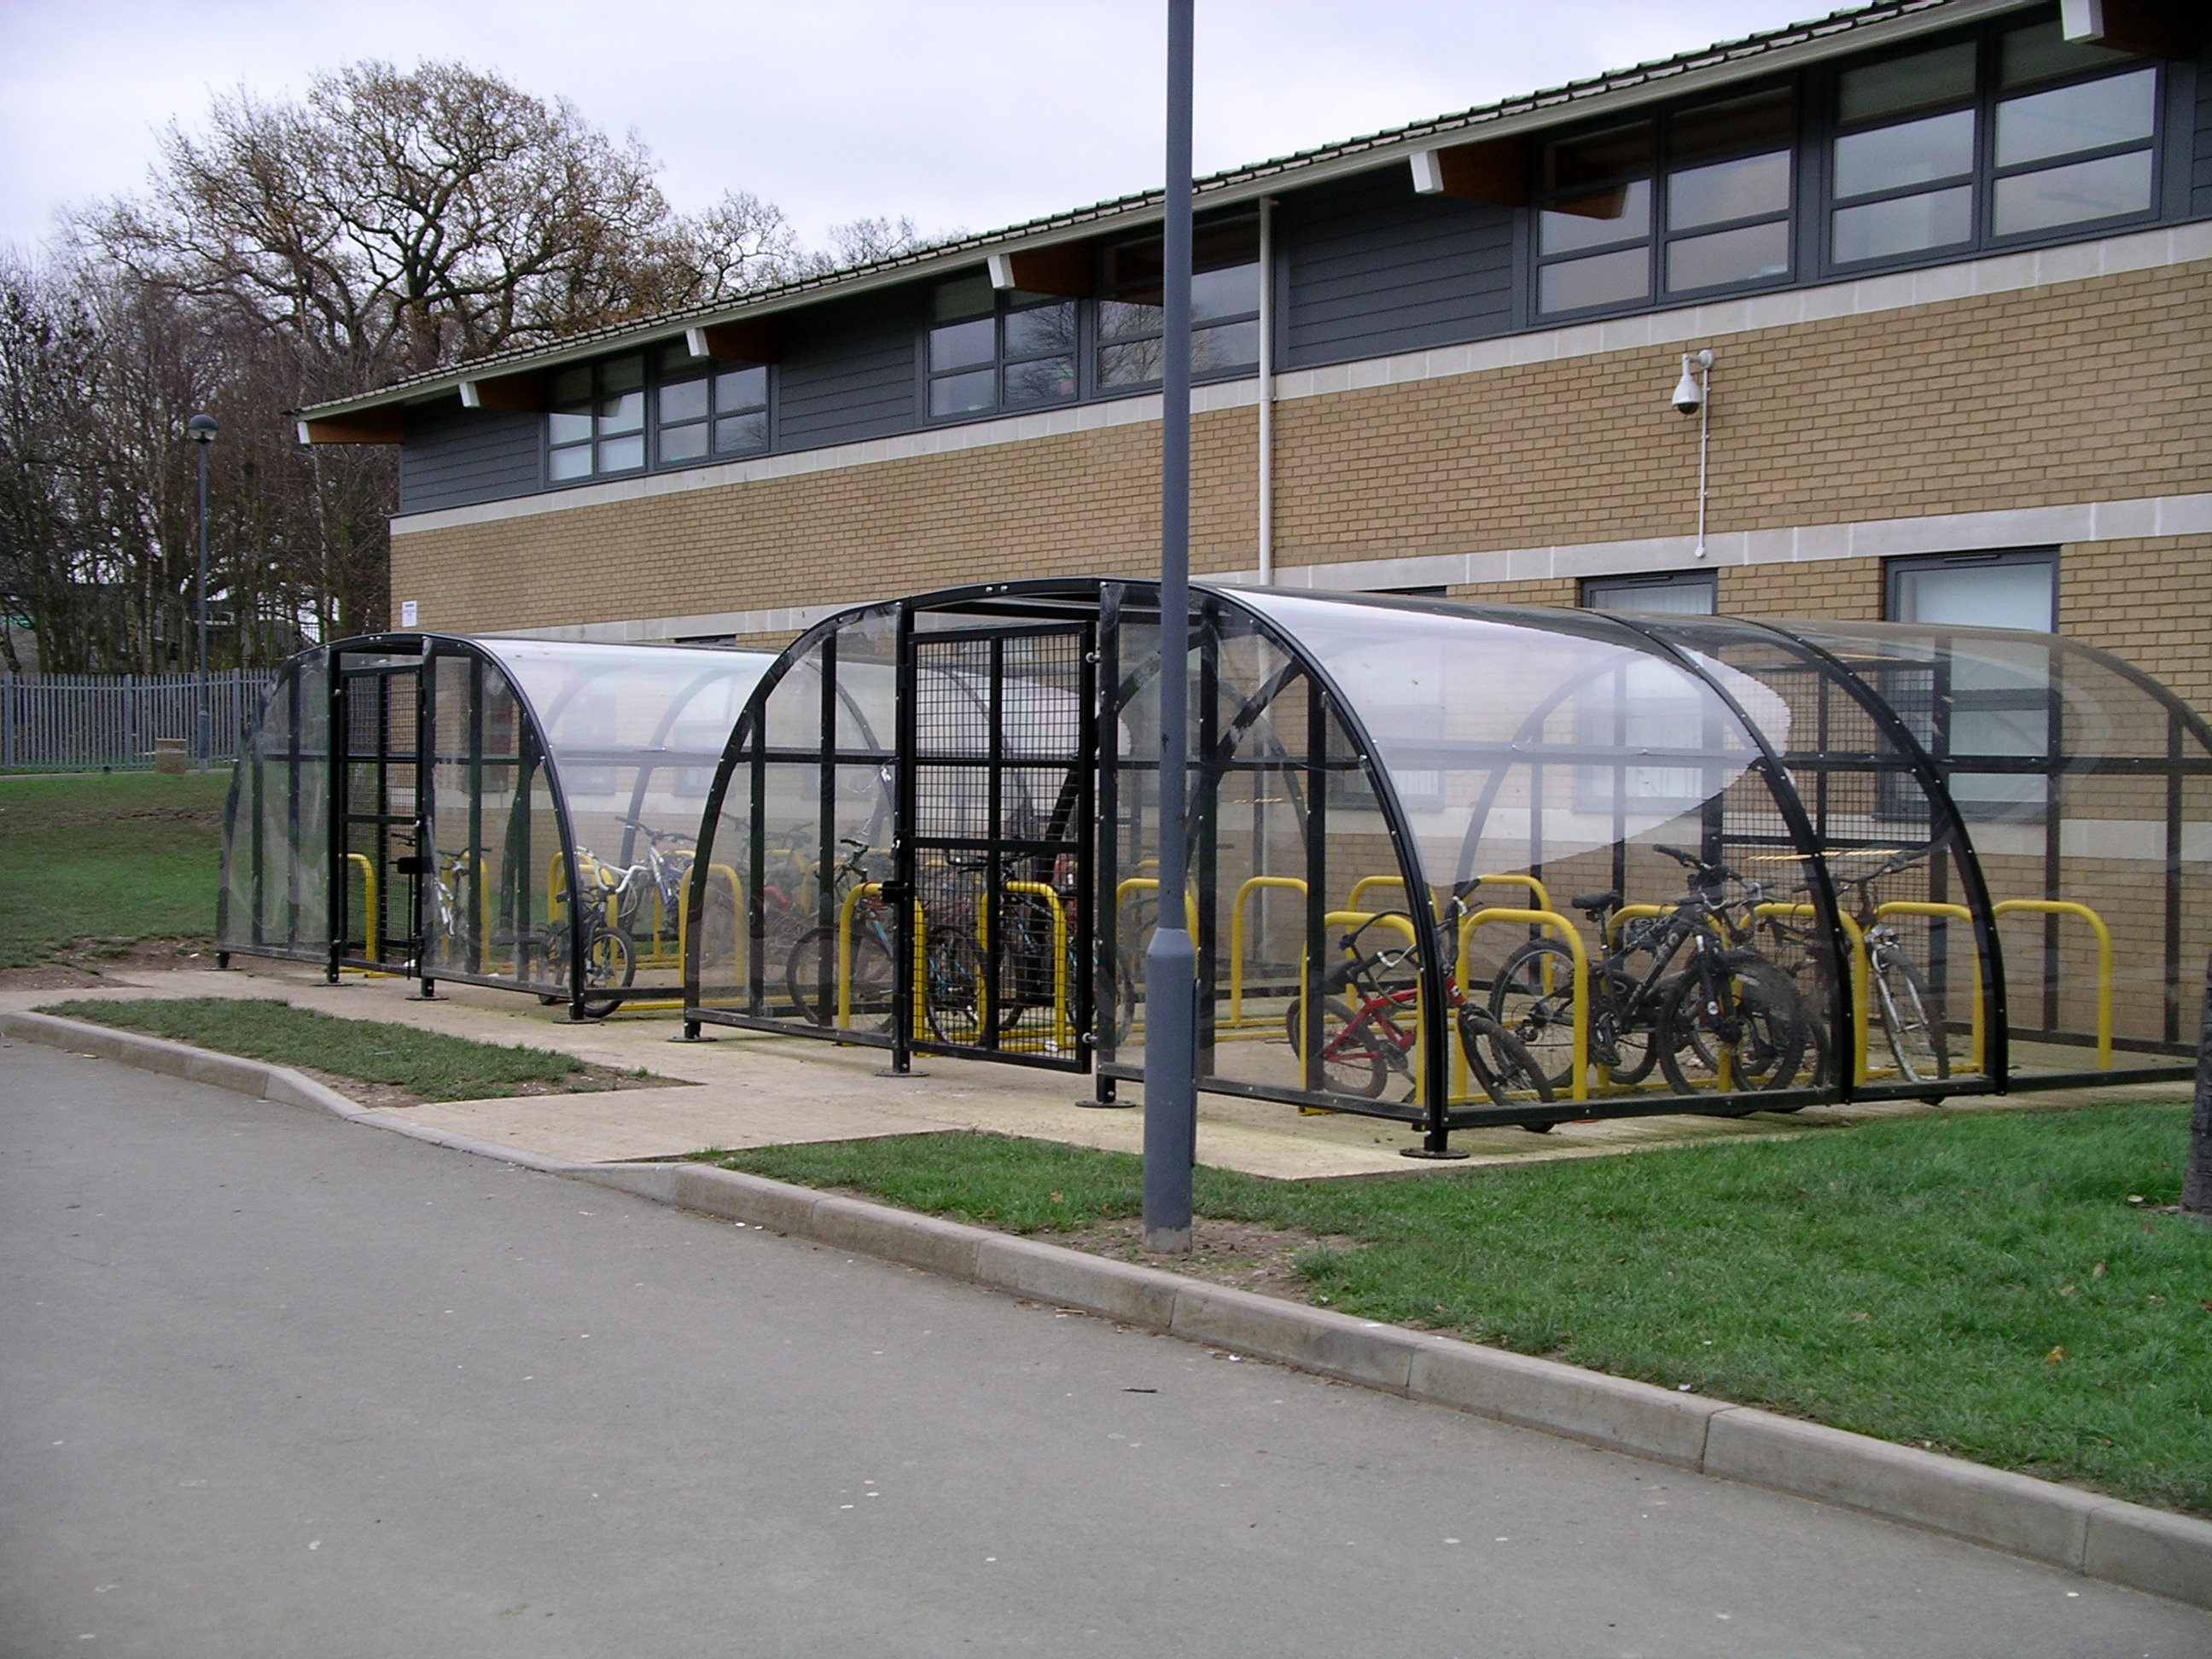 File:Bike shed 15d06.jpg - Wikimedia Commons